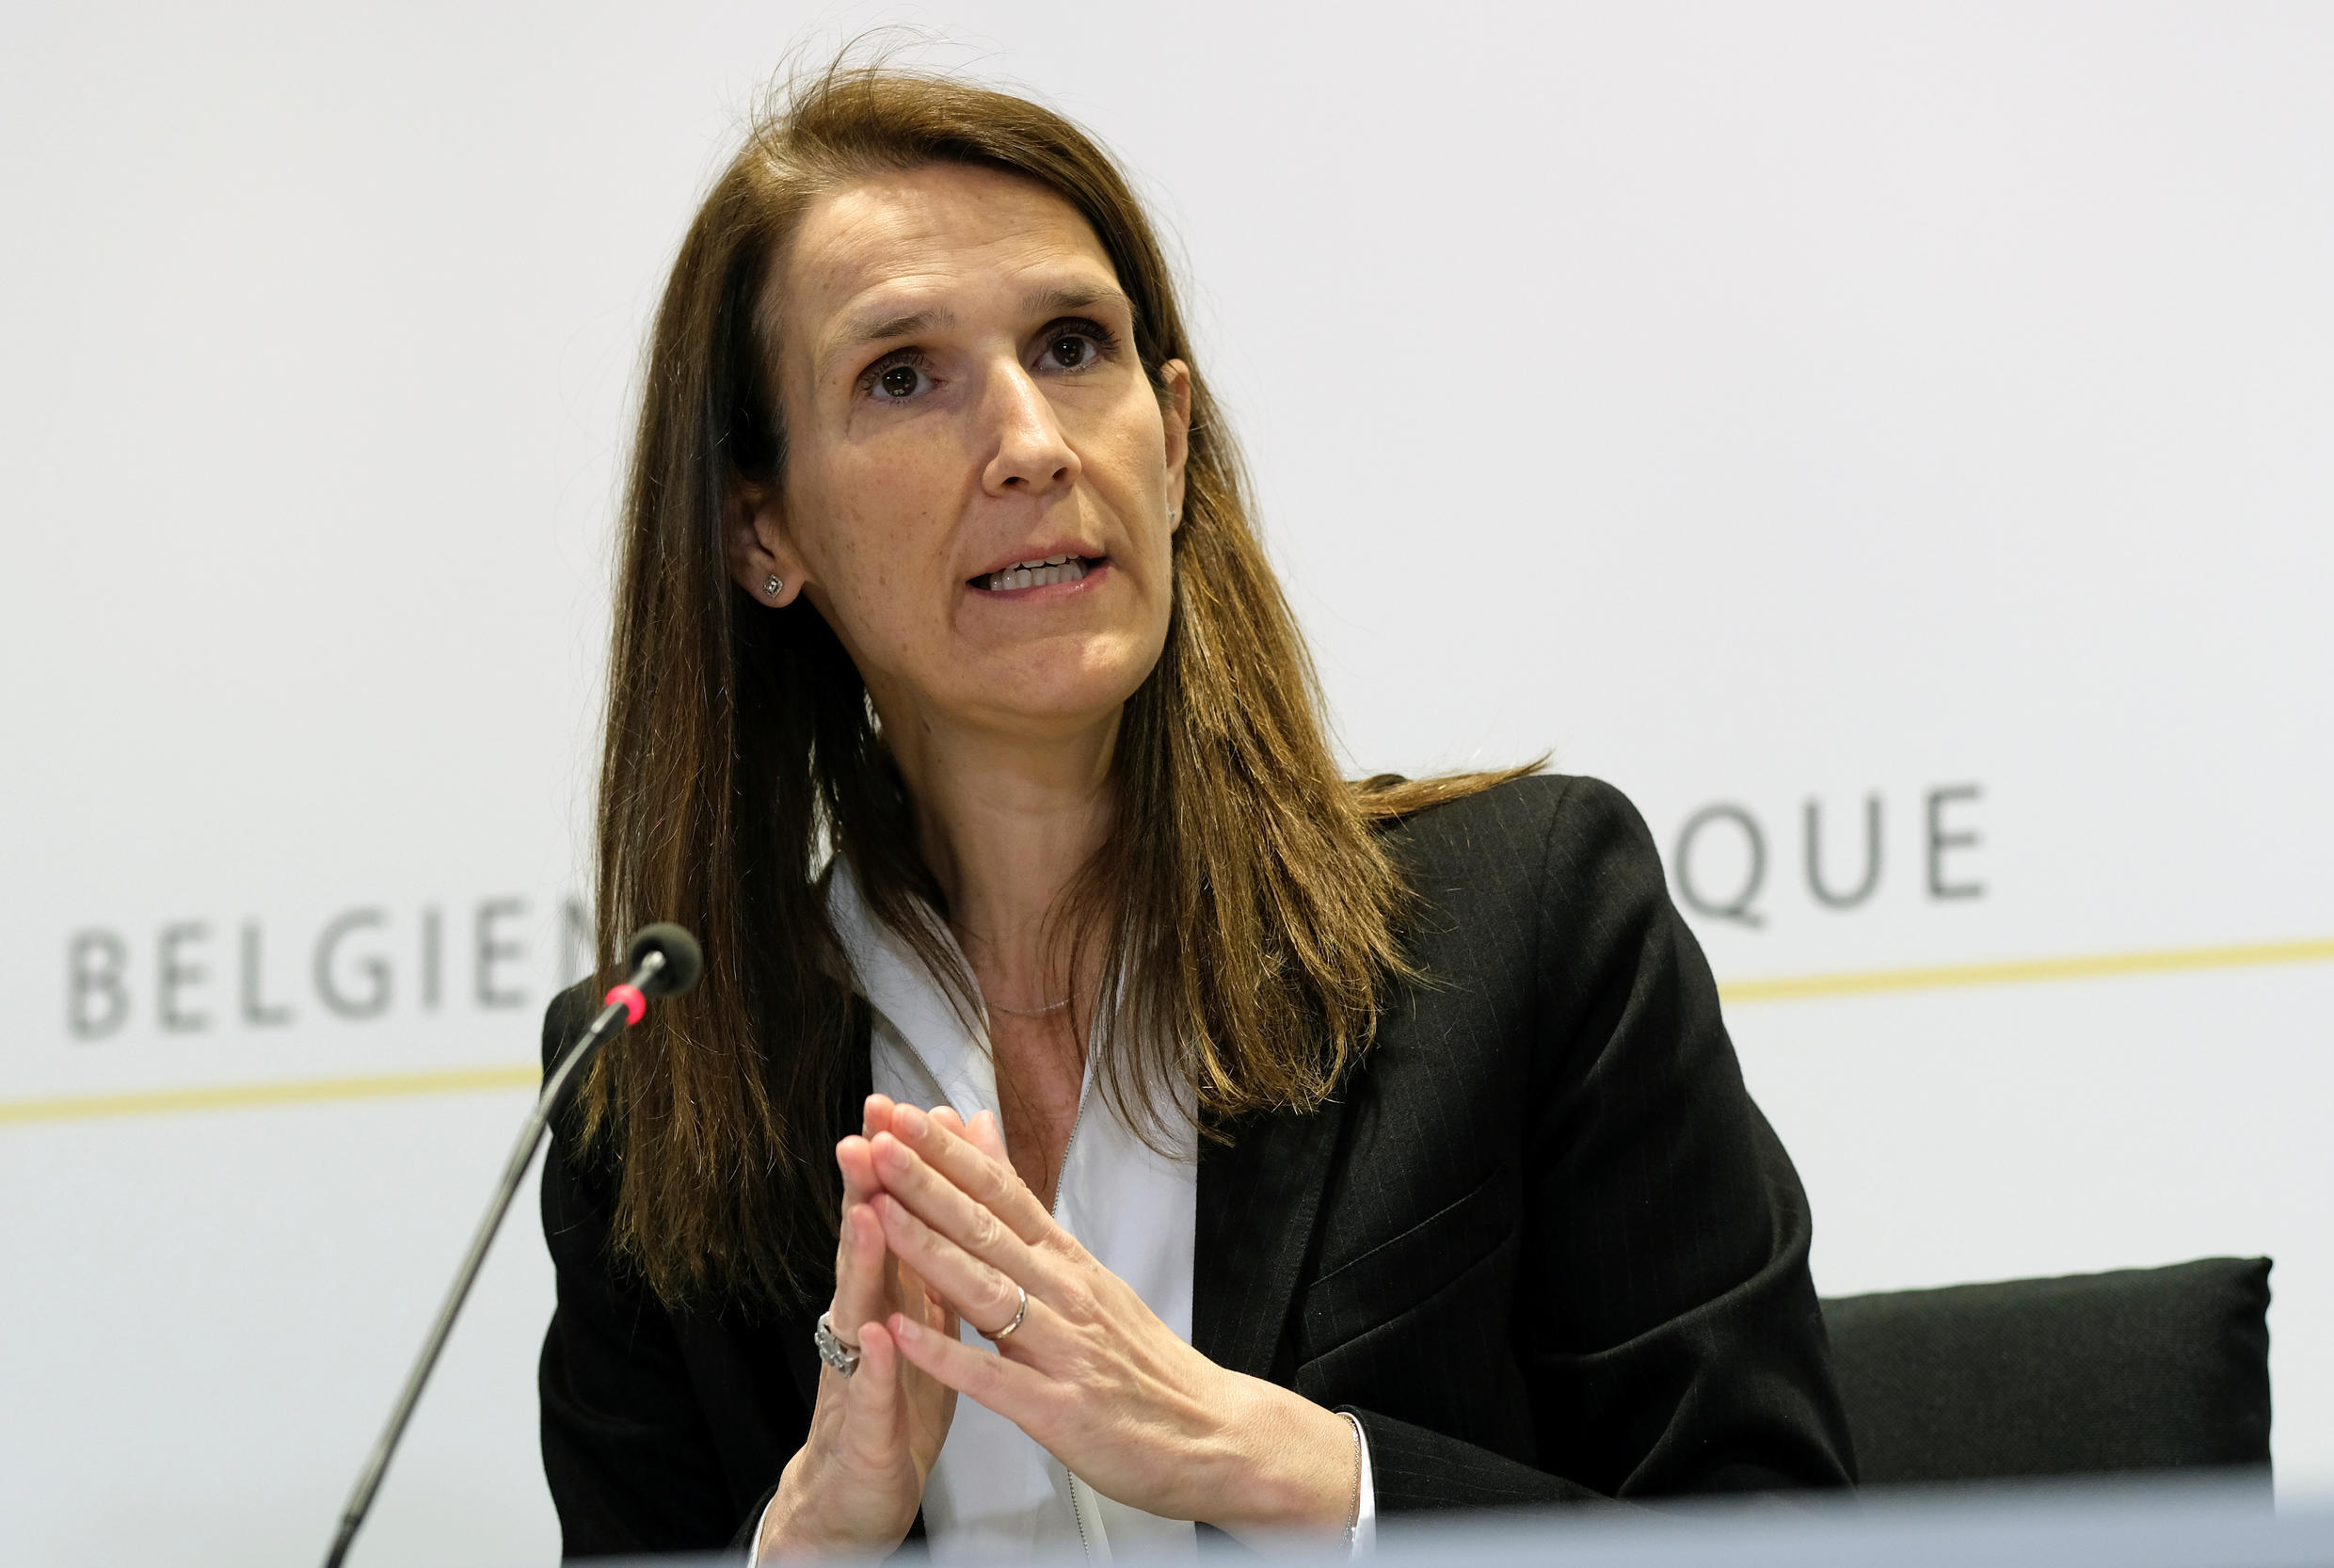 Belgium's Prime Minister Sophie Wilmes holds a news conference on post-lockdown measures amid coronavirus disease (COVID-19) outbreak, in Brussels, Belgium April 24, 2020.